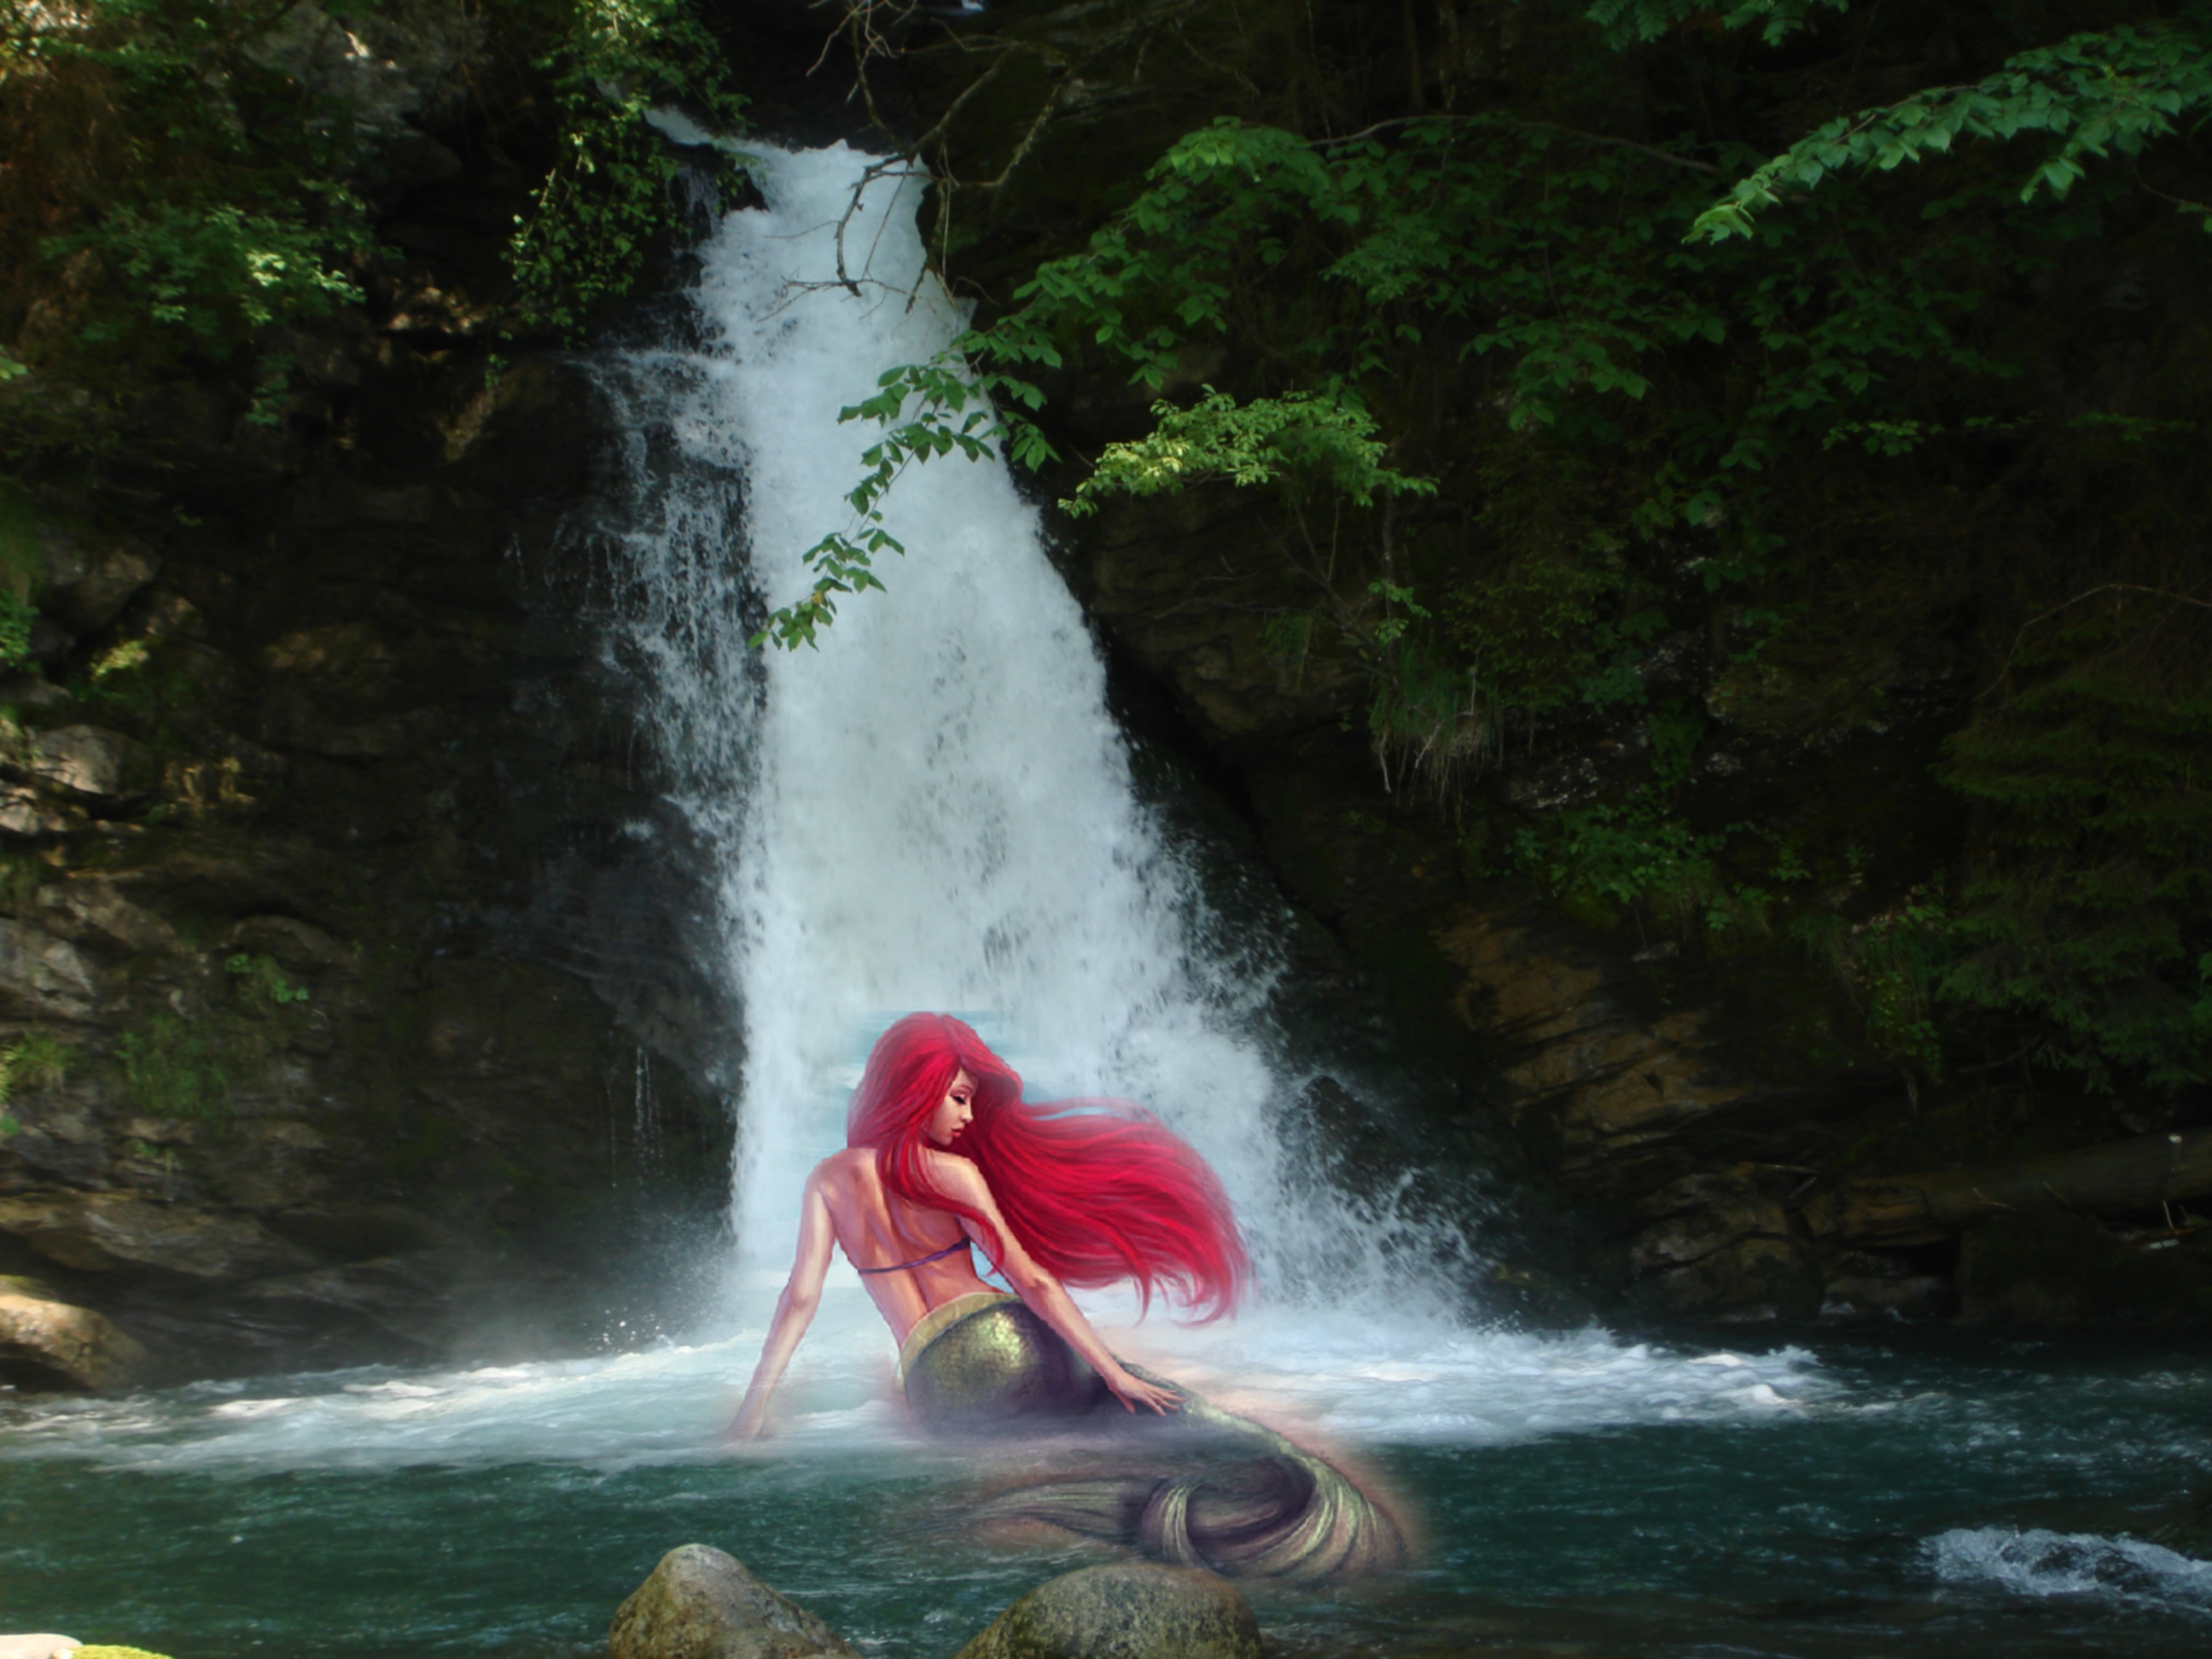 Fantasy - Mermaid  - Red Haired Mermaid Wallpaper